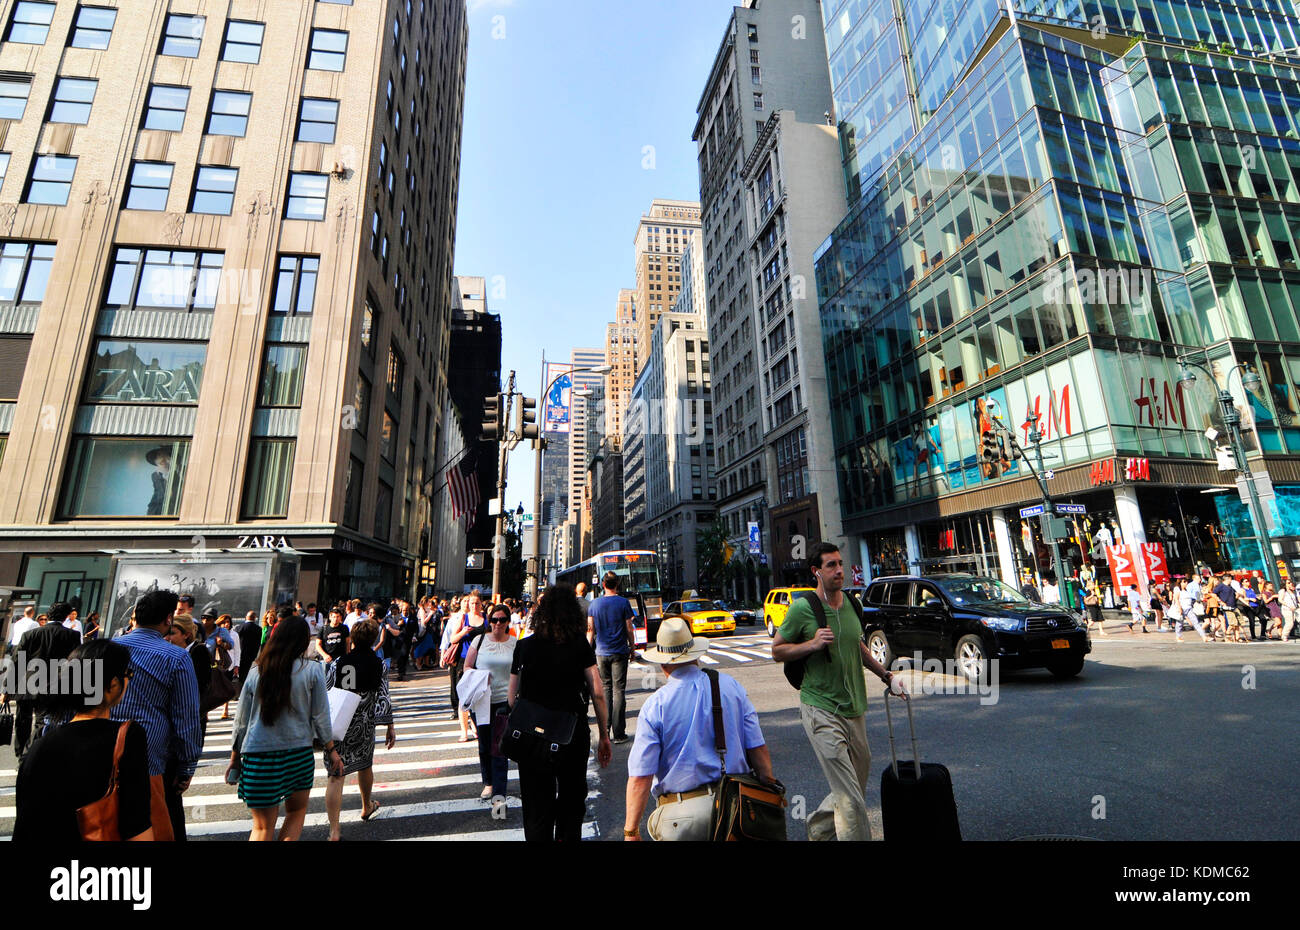 Pedestrians crossing 42nd Street along the 5th Ave in Manhattan. - Stock Image